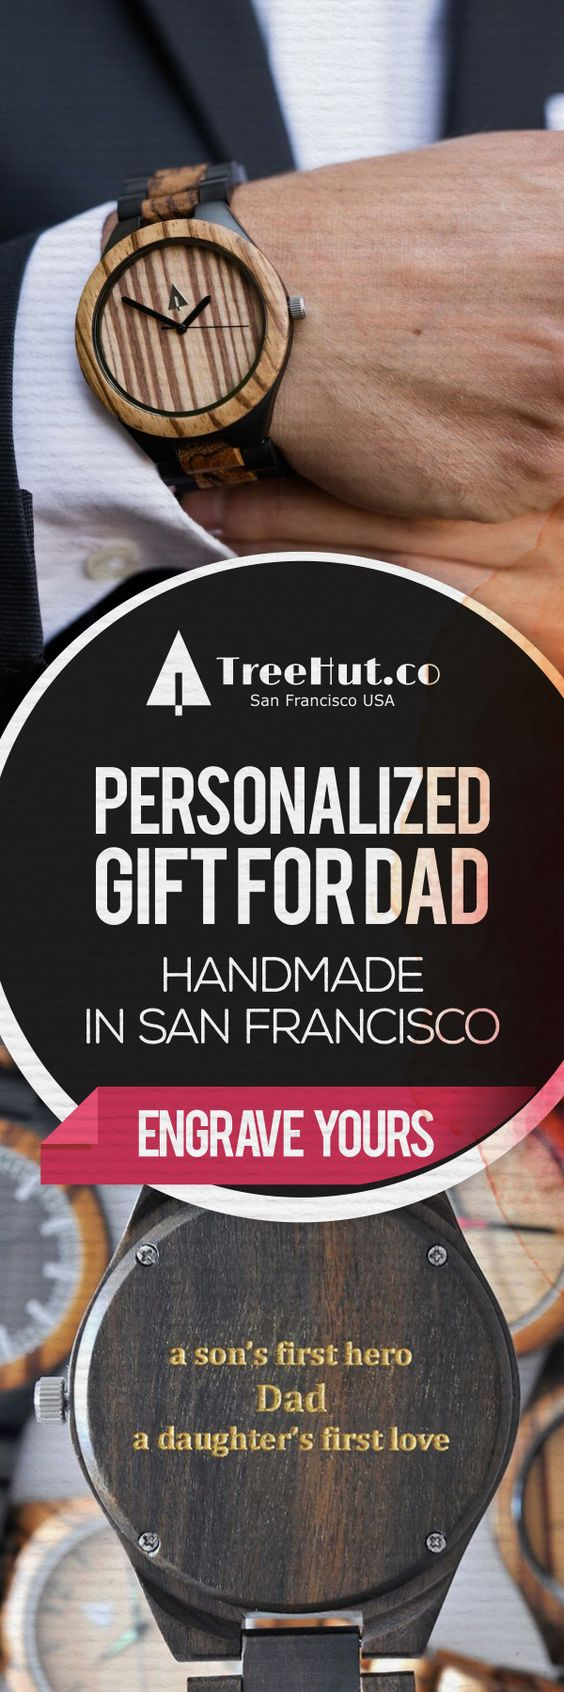 (Free US Express Shipping for our Father's Day Sale! Guaranteed US Arrival by Father's Day!) Handcrafted in San Francisco. Nature-inspired designs that make the perfect gift for your special ones! See the full collection at Tree Hut.